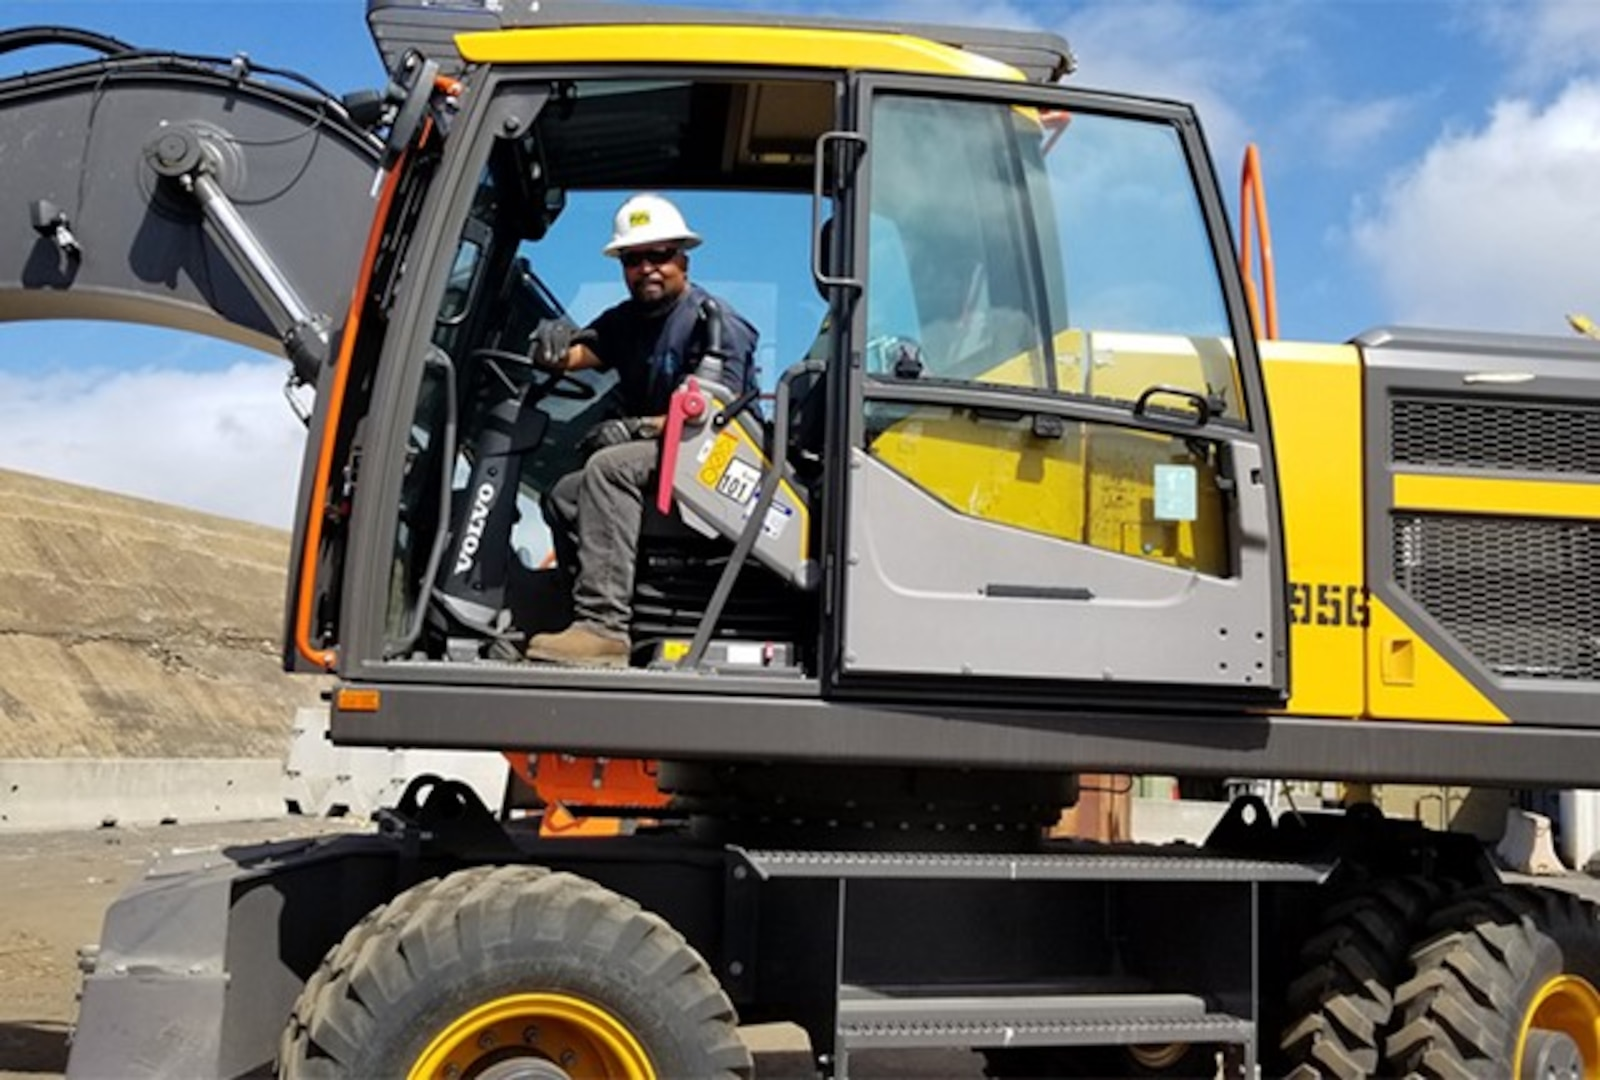 A man with a hard hat sit in the cab of a yellow piece of material handling equipment.